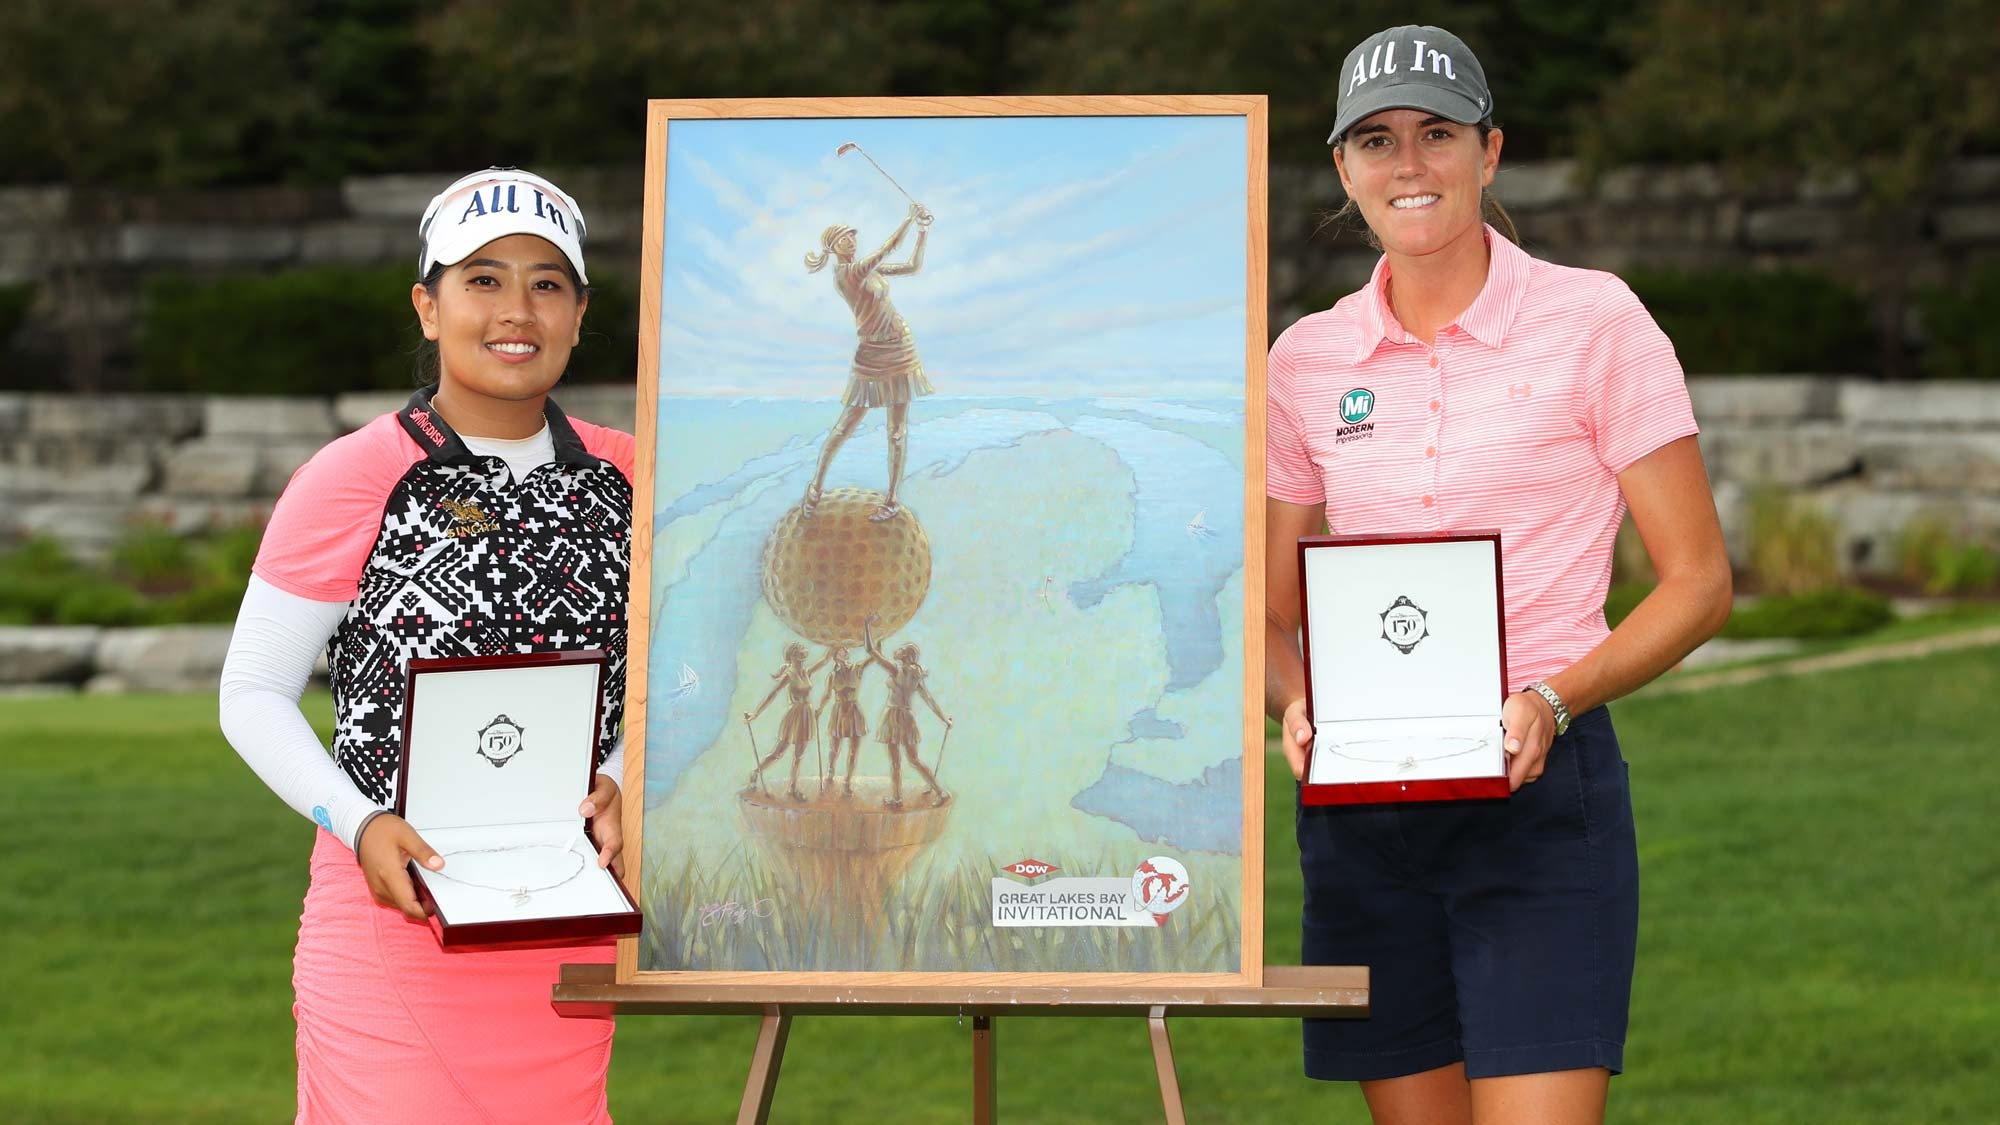 Jasmine Suwannapura and Cydney Clanton have their #BagsPacked for the 2020 Diamond Resorts Tournament of Champions after their win at the Dow Great Lakes Bay invitational